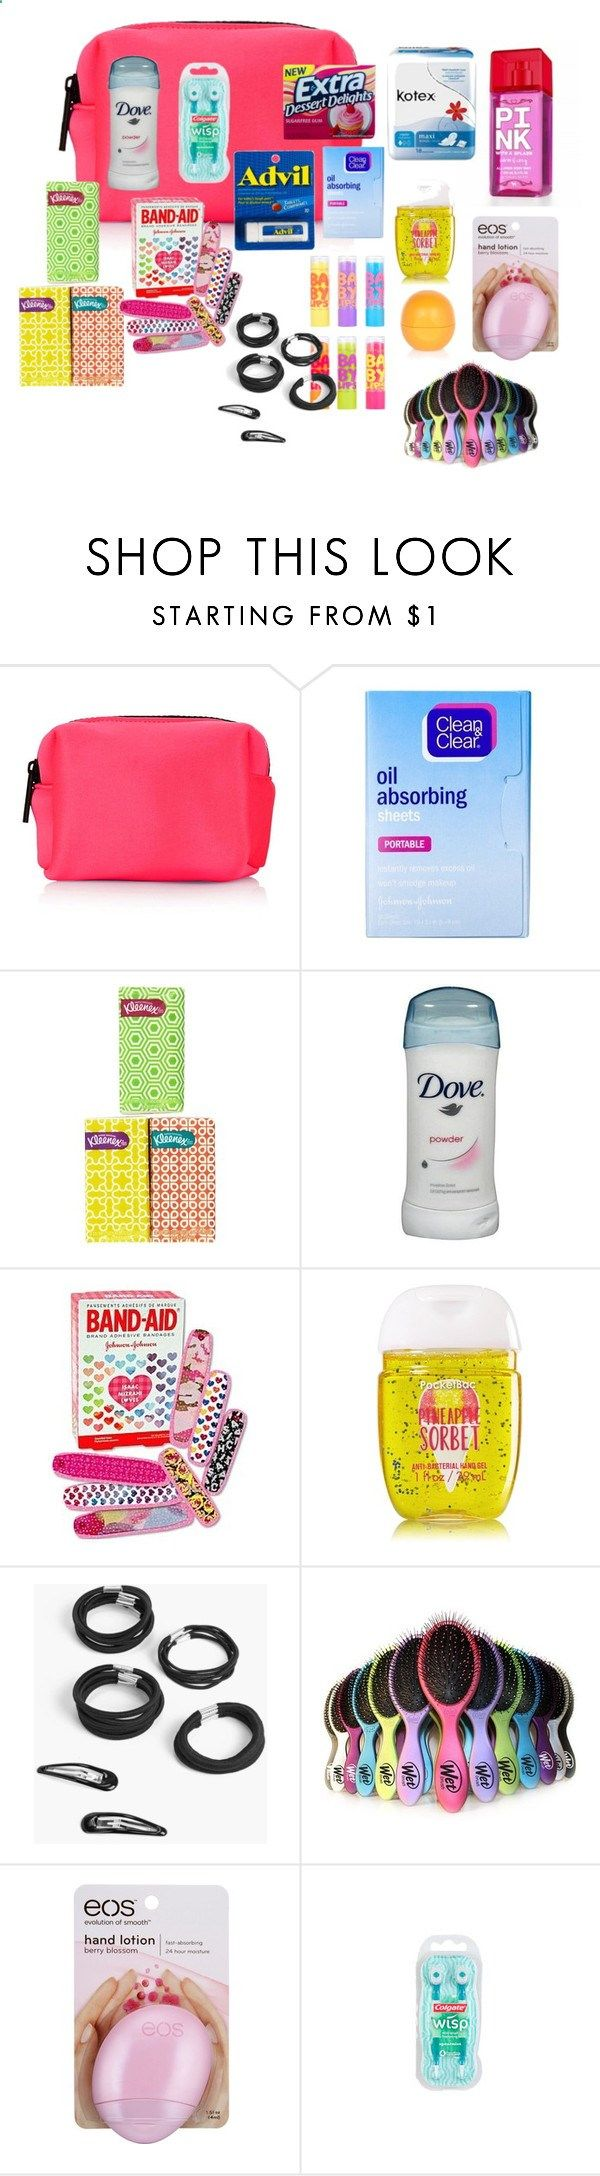 Middle School Girl Survival Kit by kmann924 on Polyvore featuring beauty, Topshop, Clean Clear, Victorias Secret, Maybelline, Boohoo, Eos, Colgate and River Island